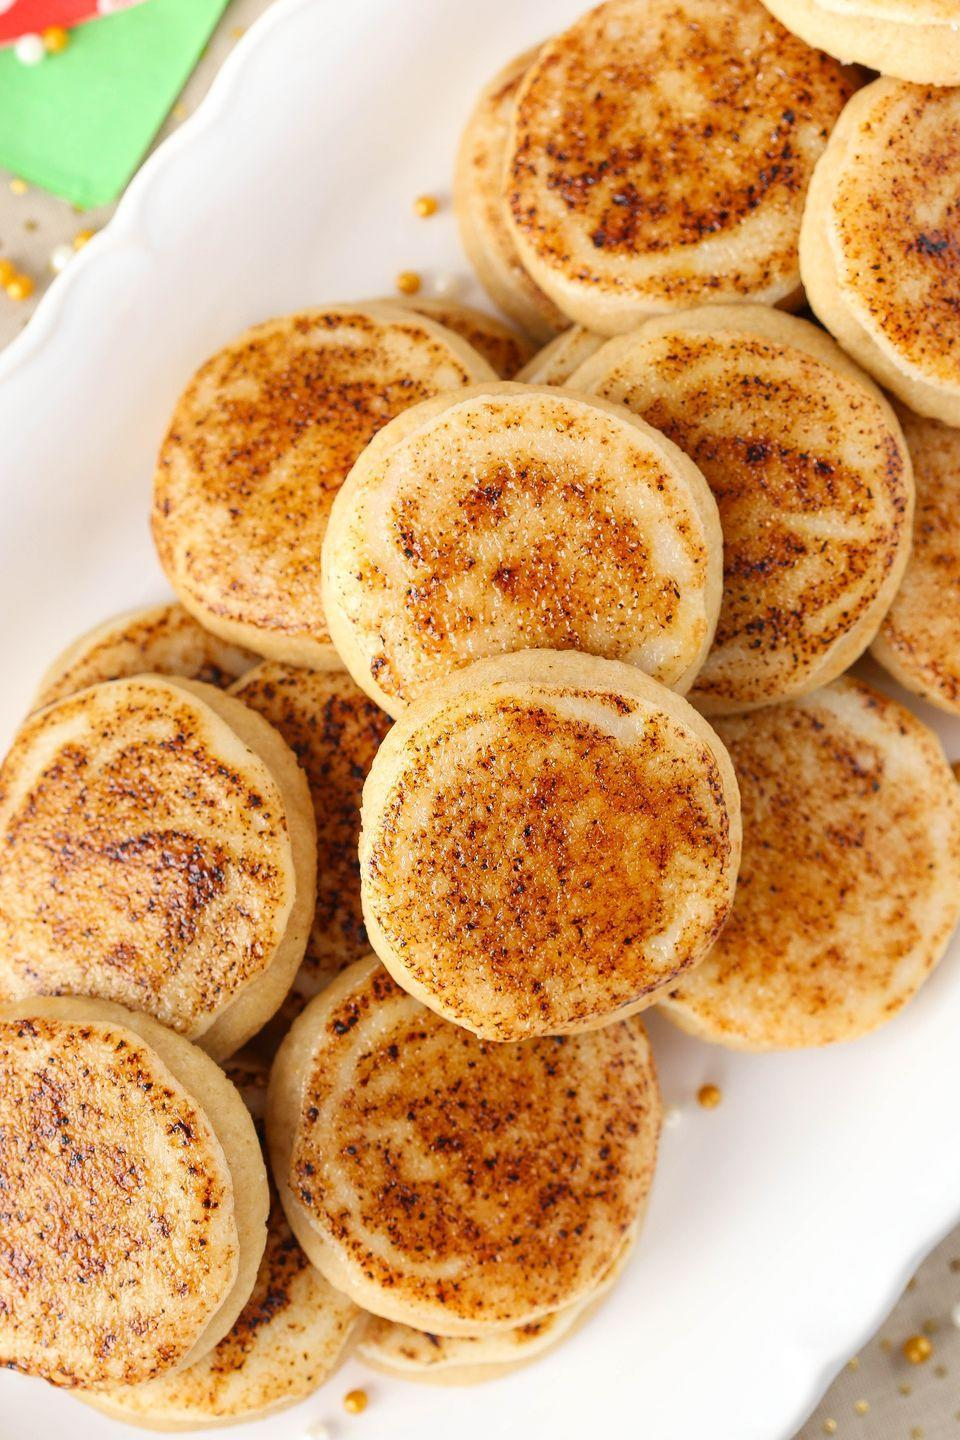 "<p>Caramelized sugar is our new favorite frosting sub.</p><p>Get the recipe from <a href=""https://www.delish.com/cooking/recipe-ideas/recipes/a50280/creme-brulee-sugar-cookies-recipe/"" rel=""nofollow noopener"" target=""_blank"" data-ylk=""slk:Delish"" class=""link rapid-noclick-resp"">Delish</a>.</p>"